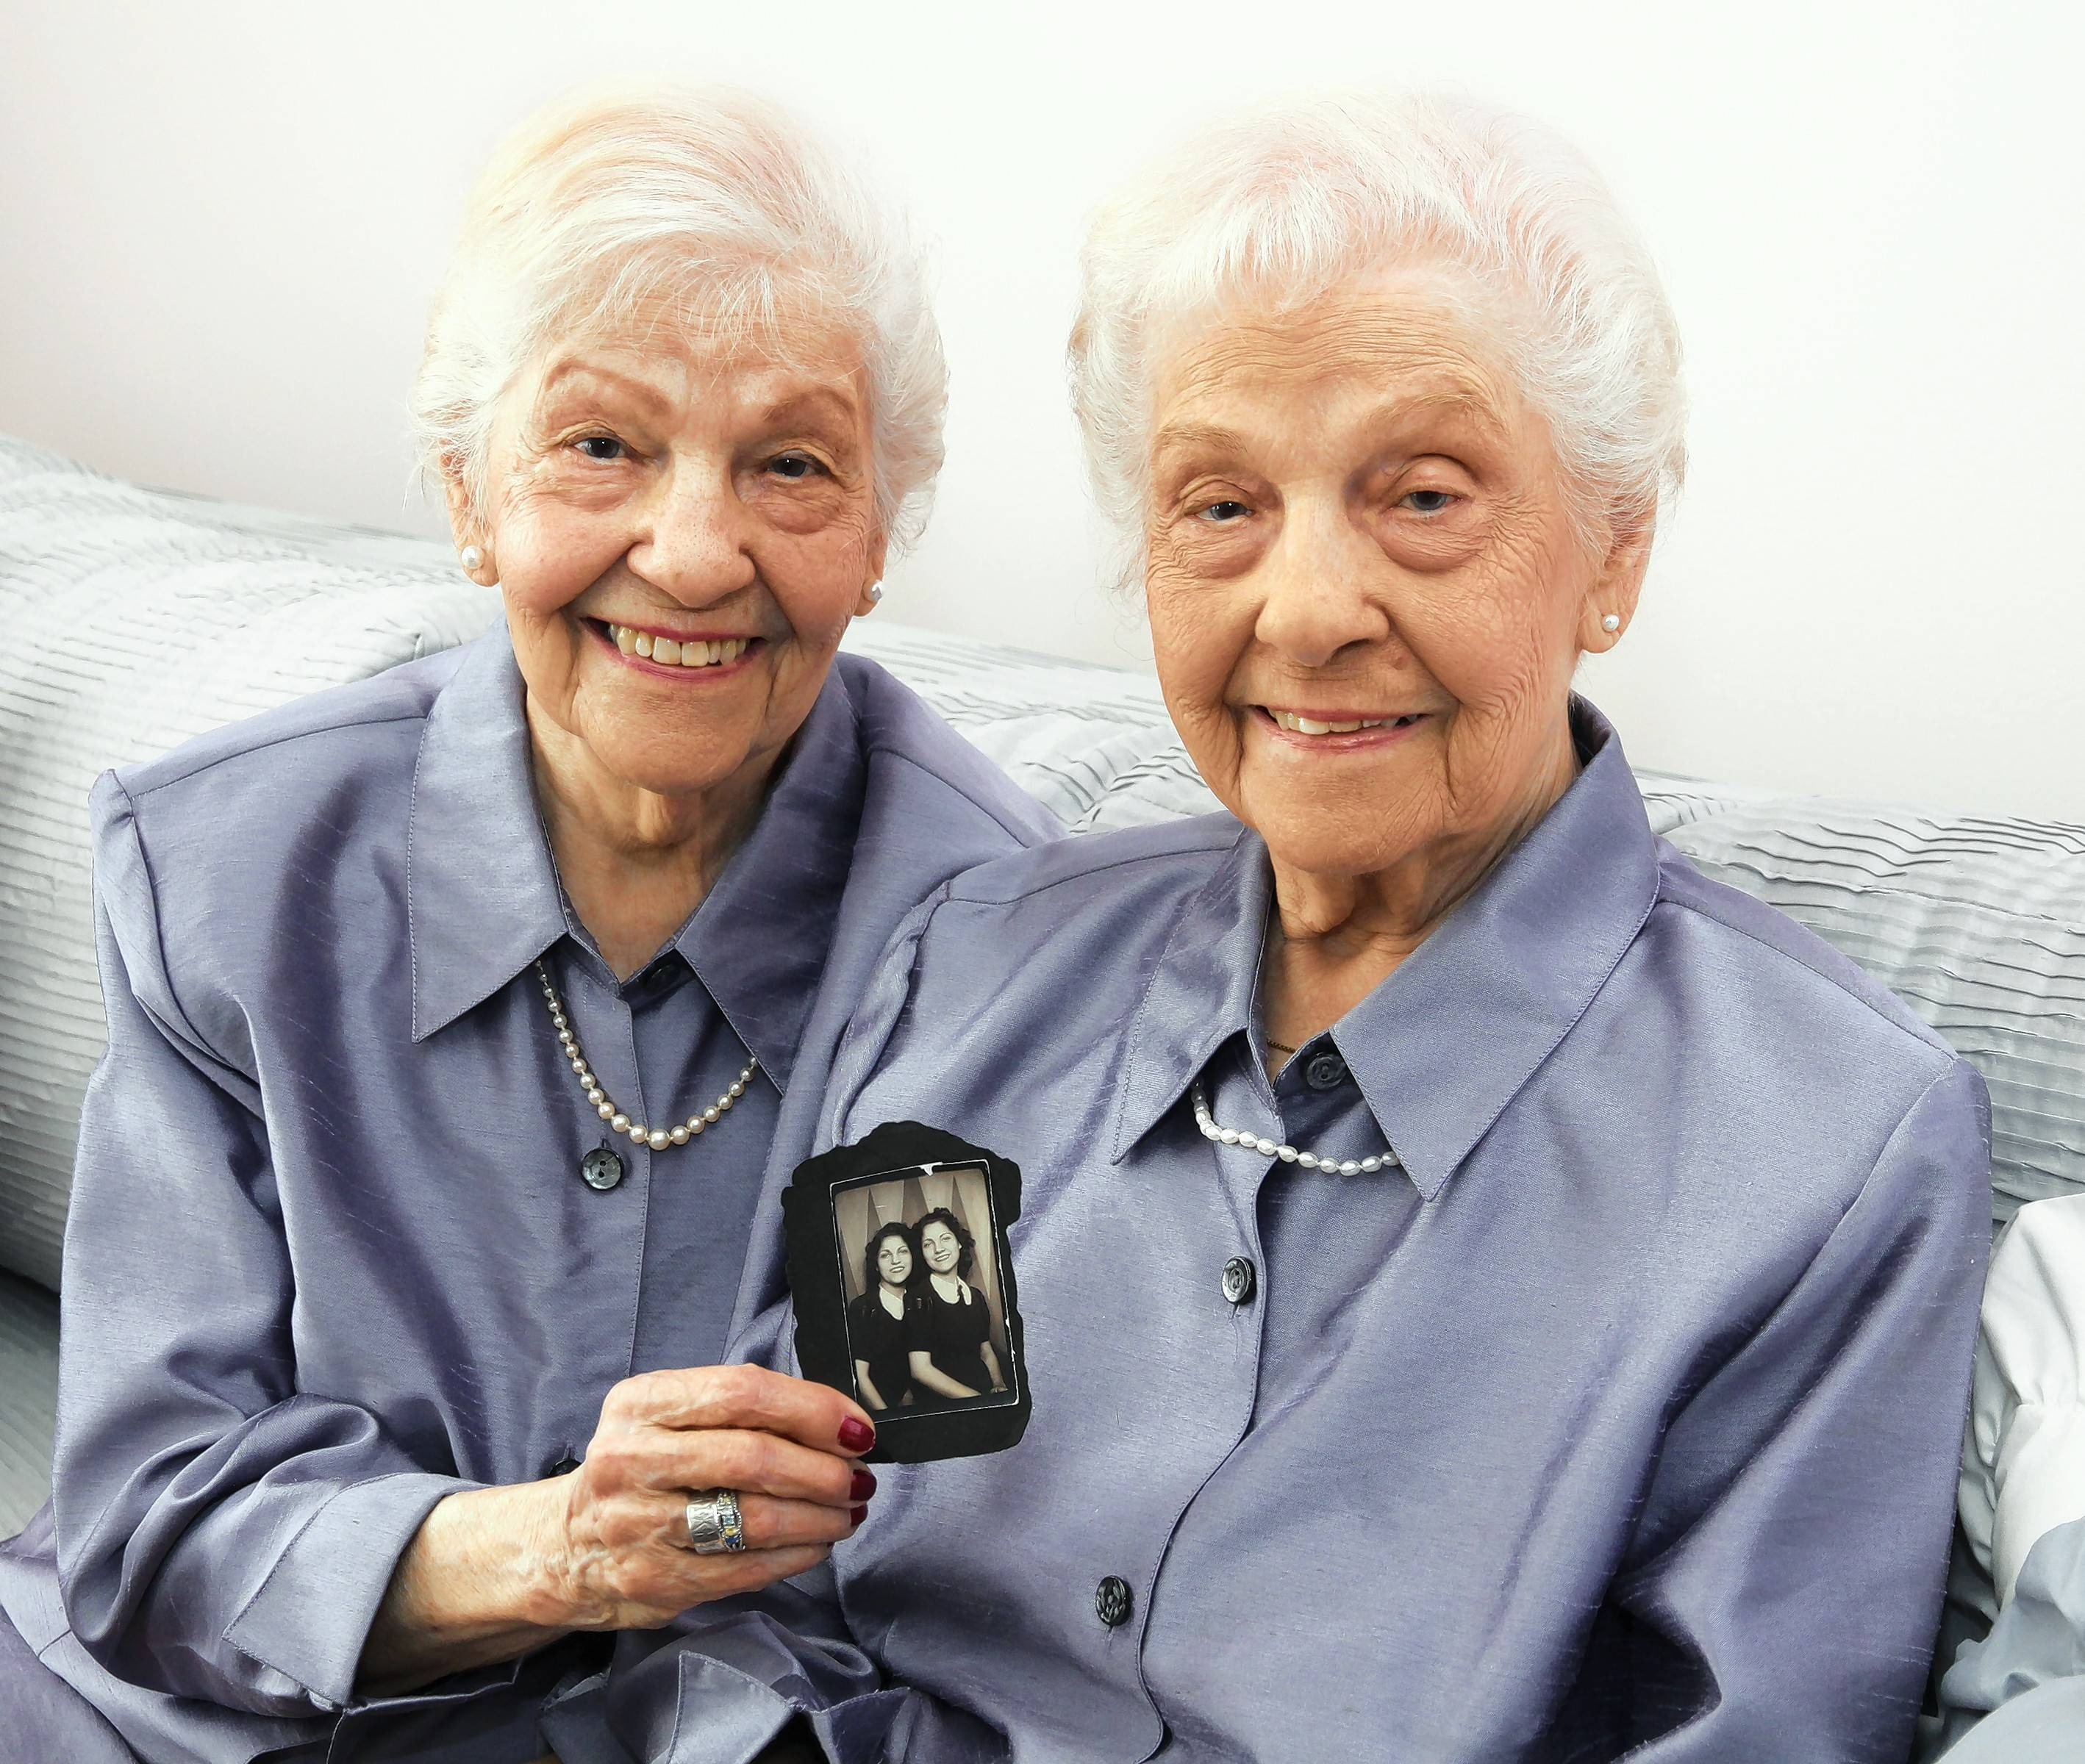 Pictures of adult identical twins